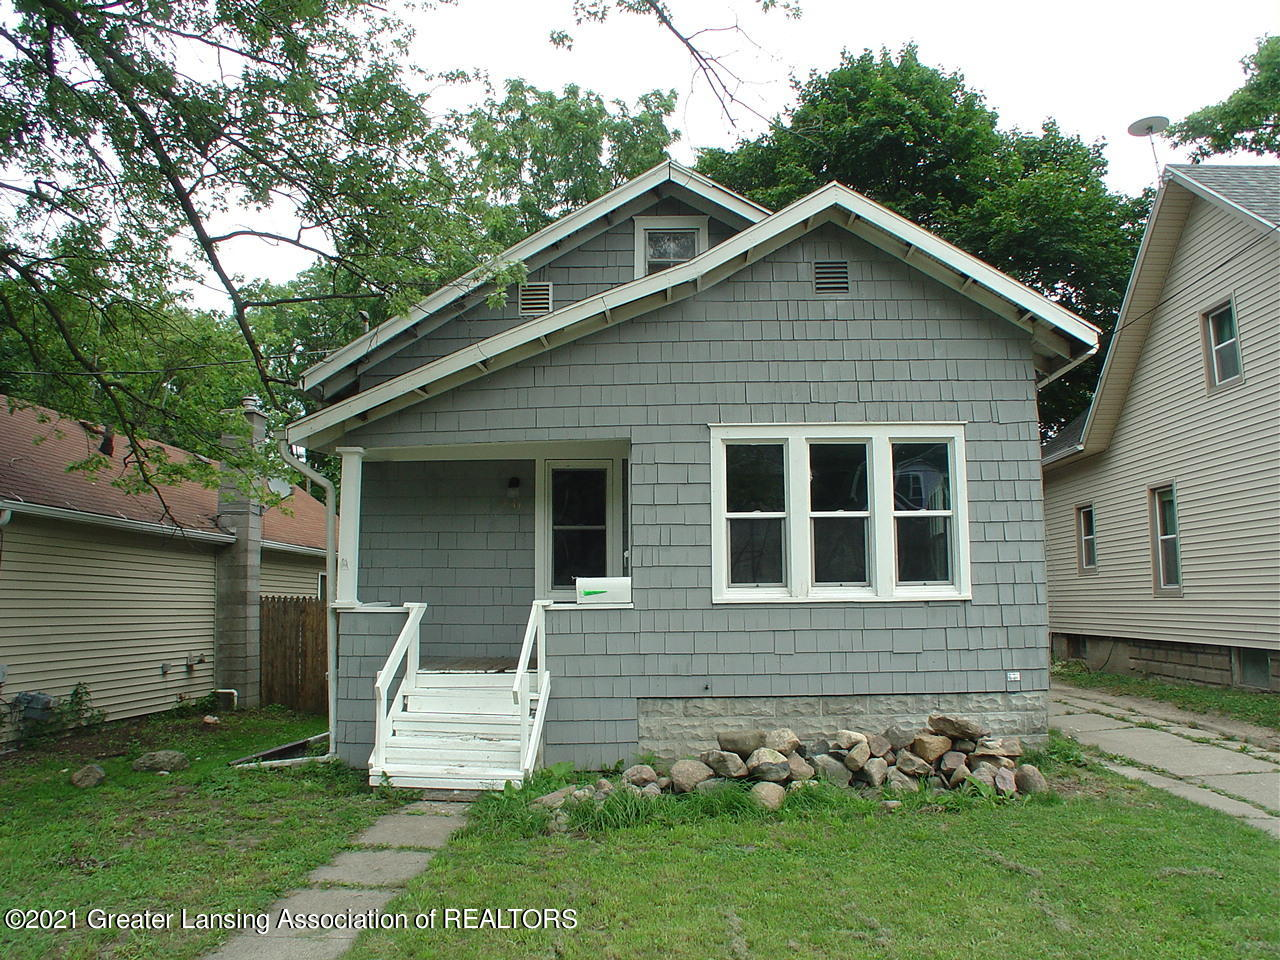 431 S Fairview Ave - 1.  Front View - 1